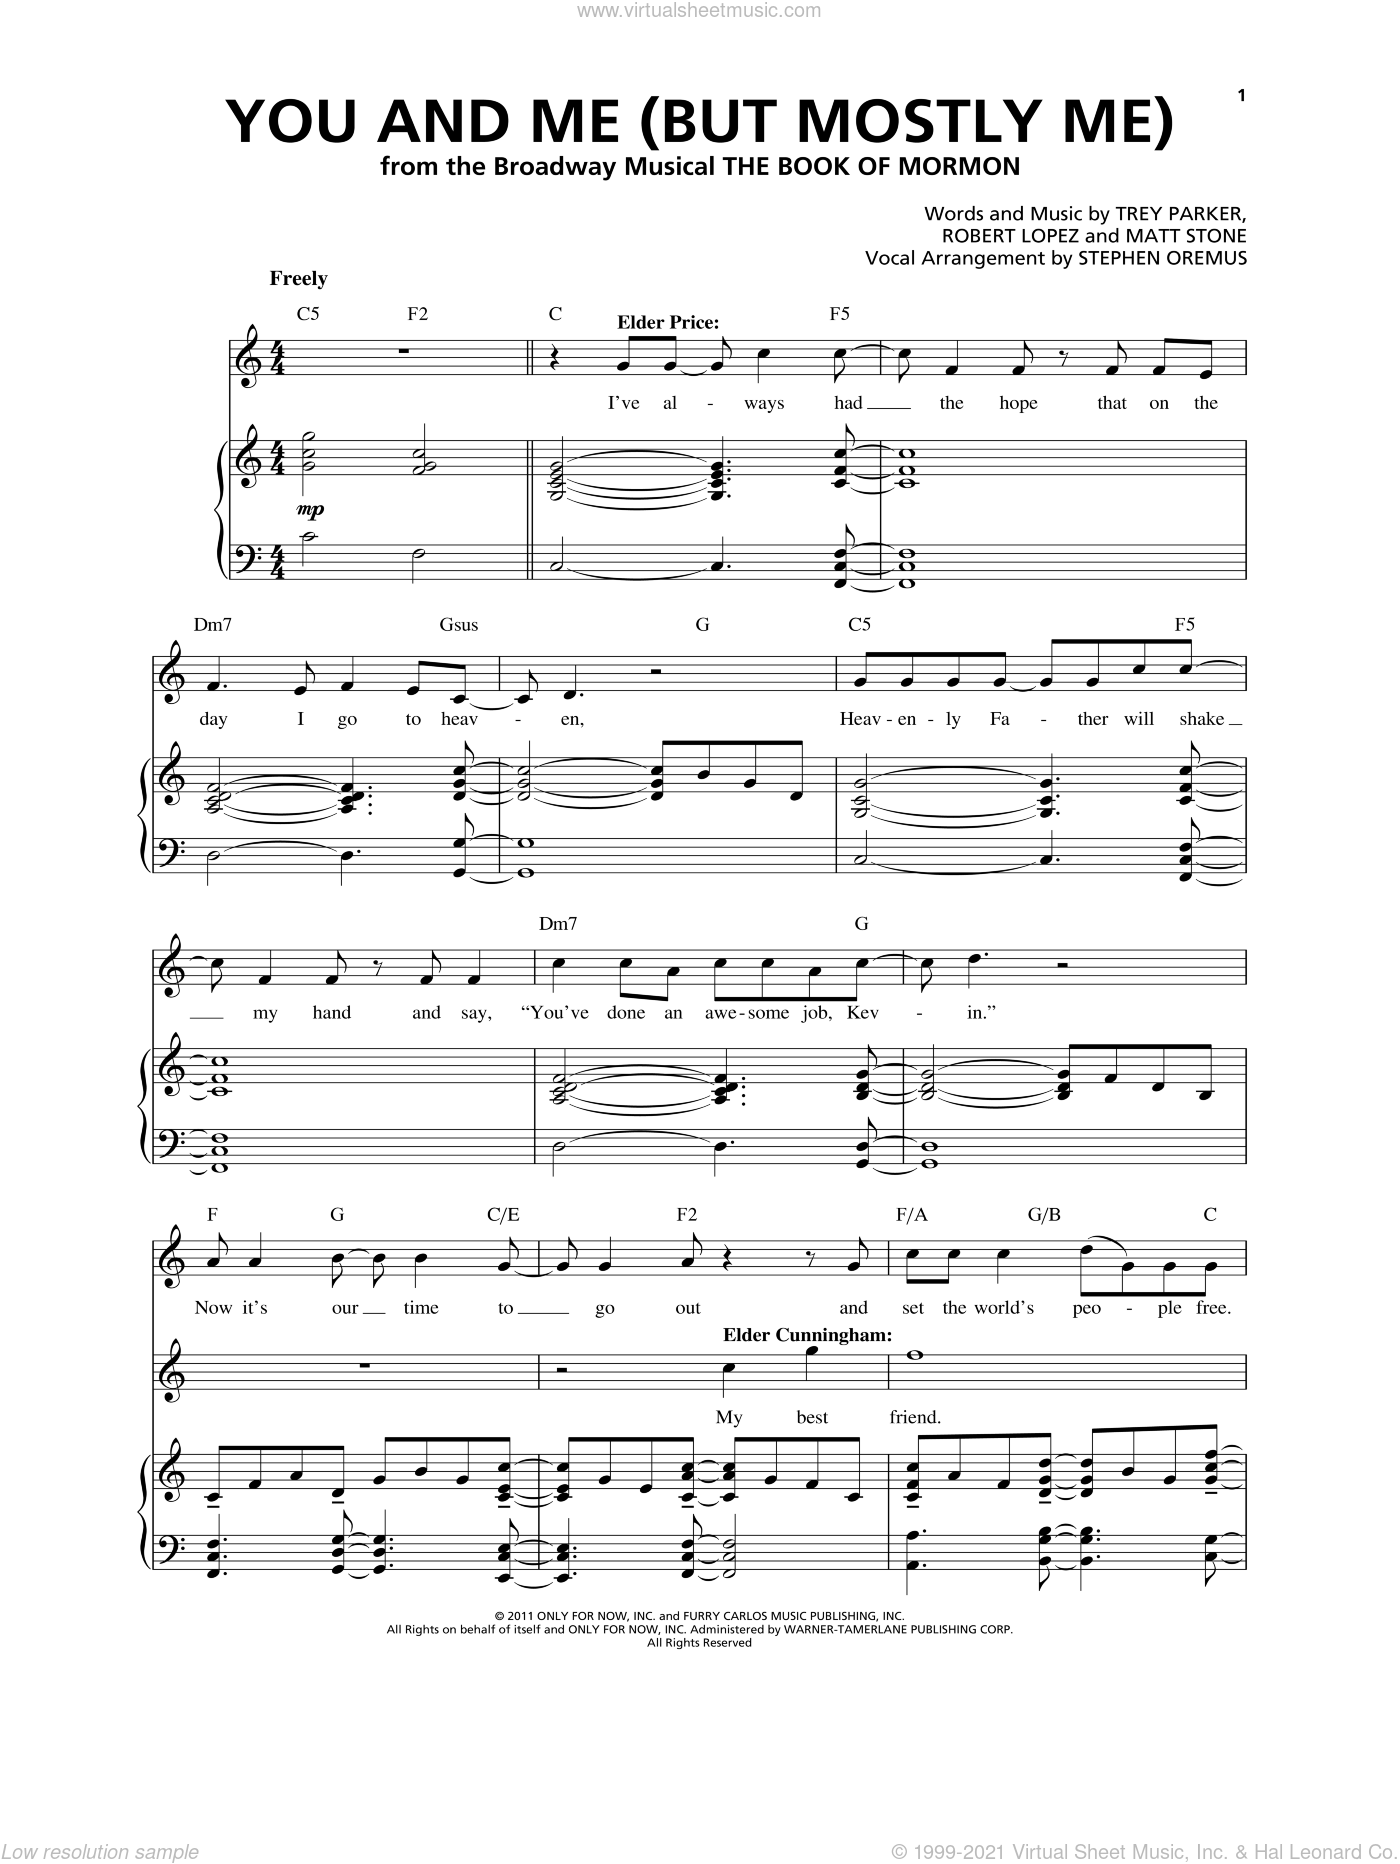 You And Me (But Mostly Me) sheet music for voice and piano by Robert Lopez, Matt Stone, Trey Parker and Trey Parker & Matt Stone, intermediate skill level